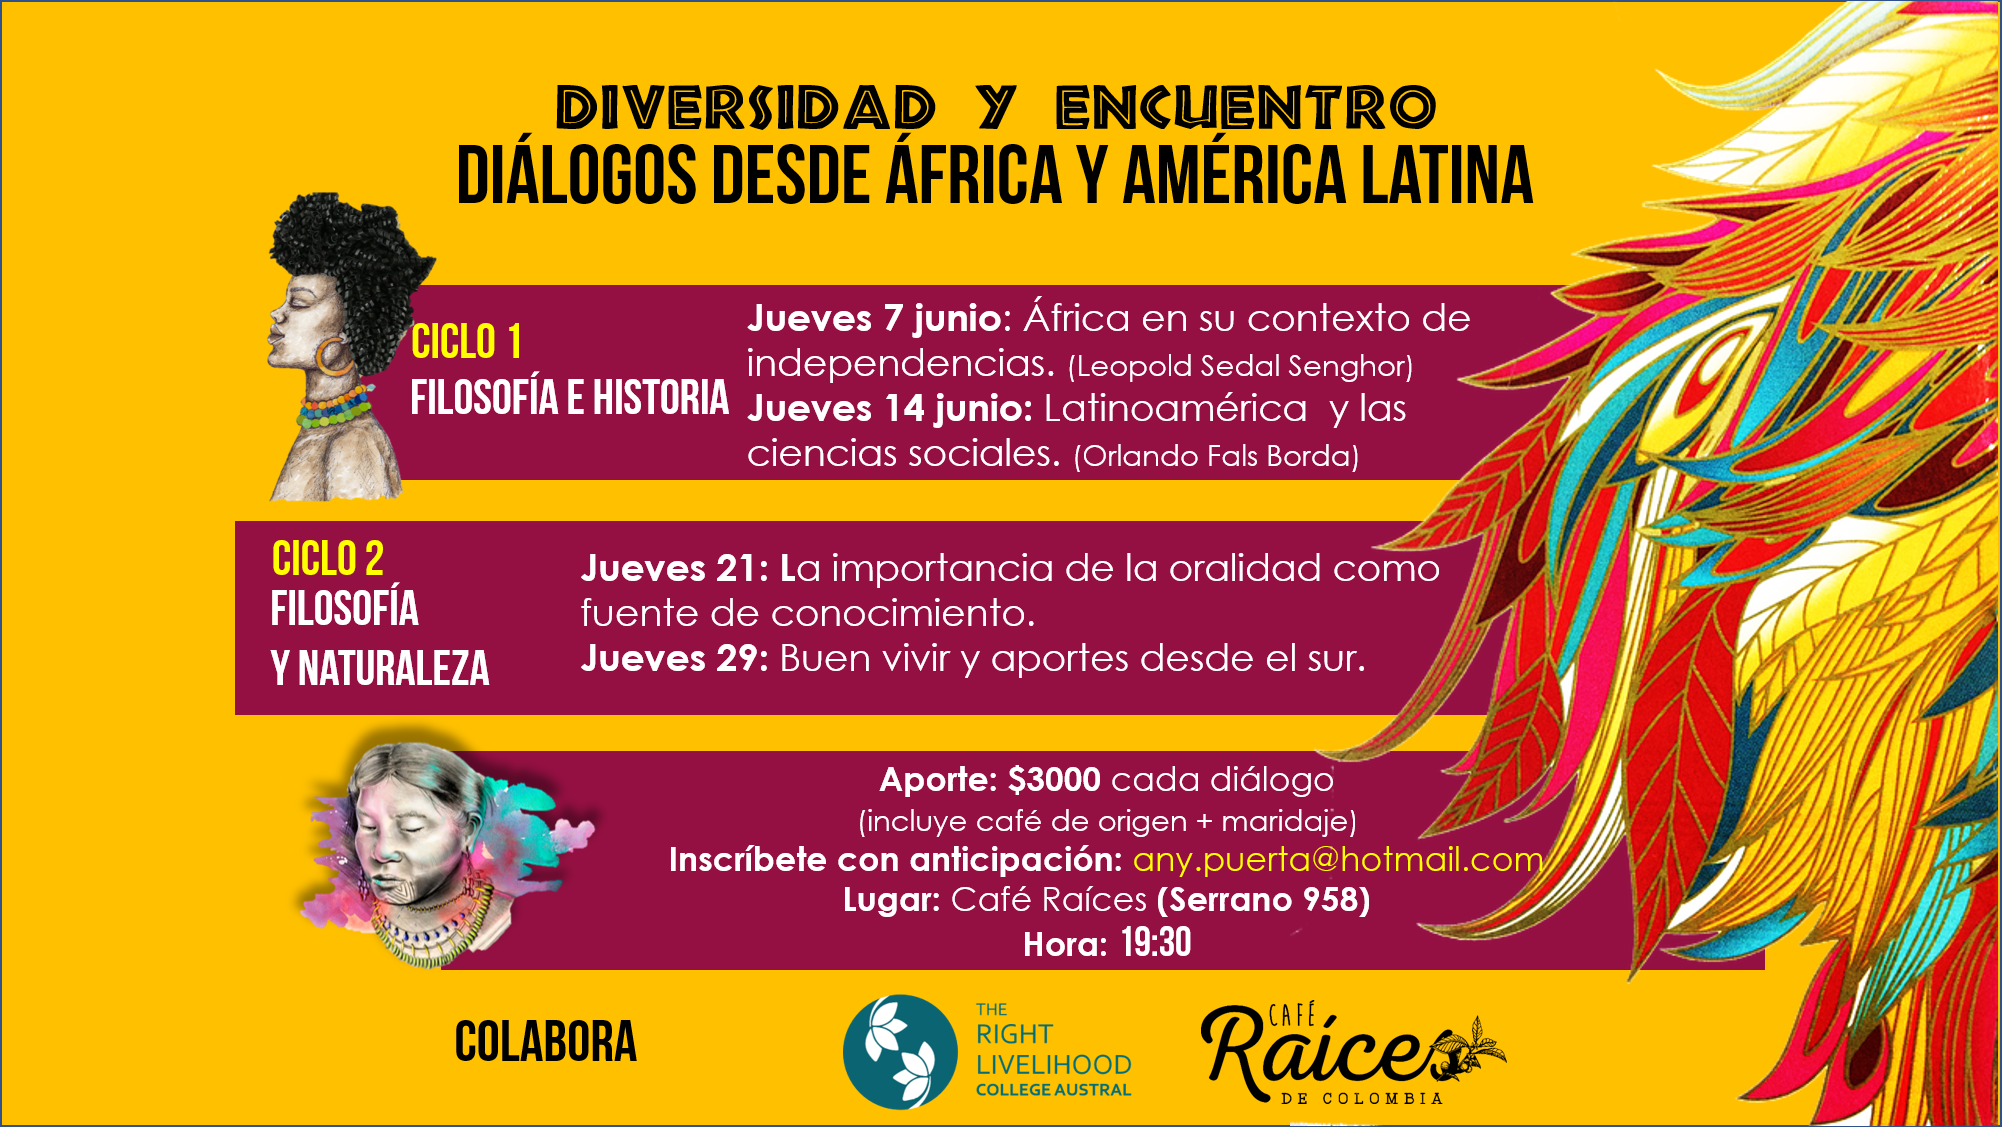 RLC Valdivia: Dialogue between Africa and Latin America